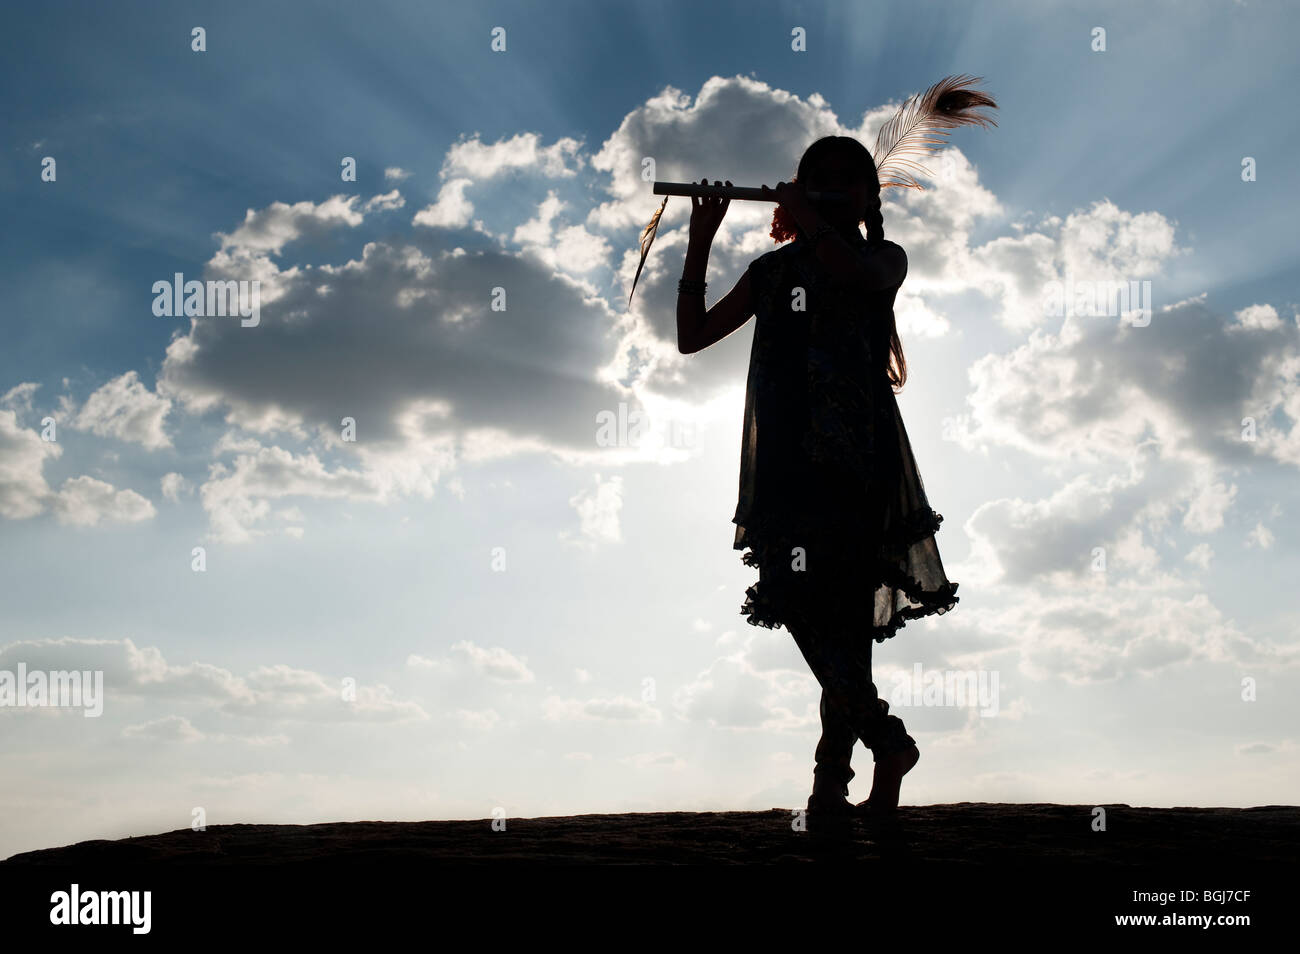 Indian girl in krishna silhouette pose at sunset in the indian countryside - Stock Image